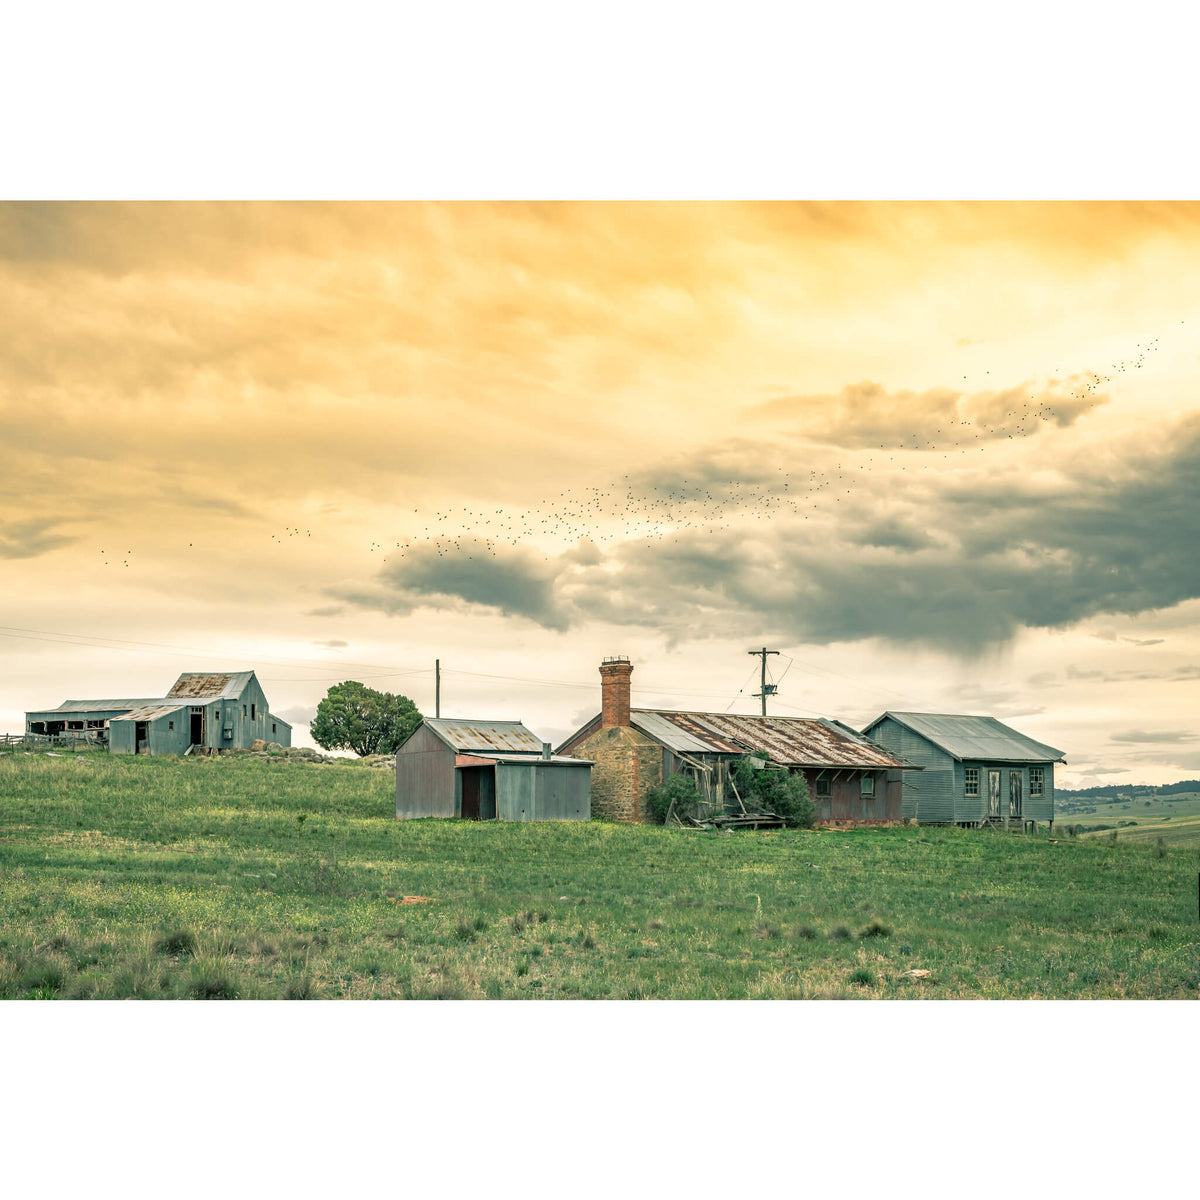 Numbla Vale Cottages & Woolshed | A Place To Call Home Fine Art Print - Lost Collective Shop